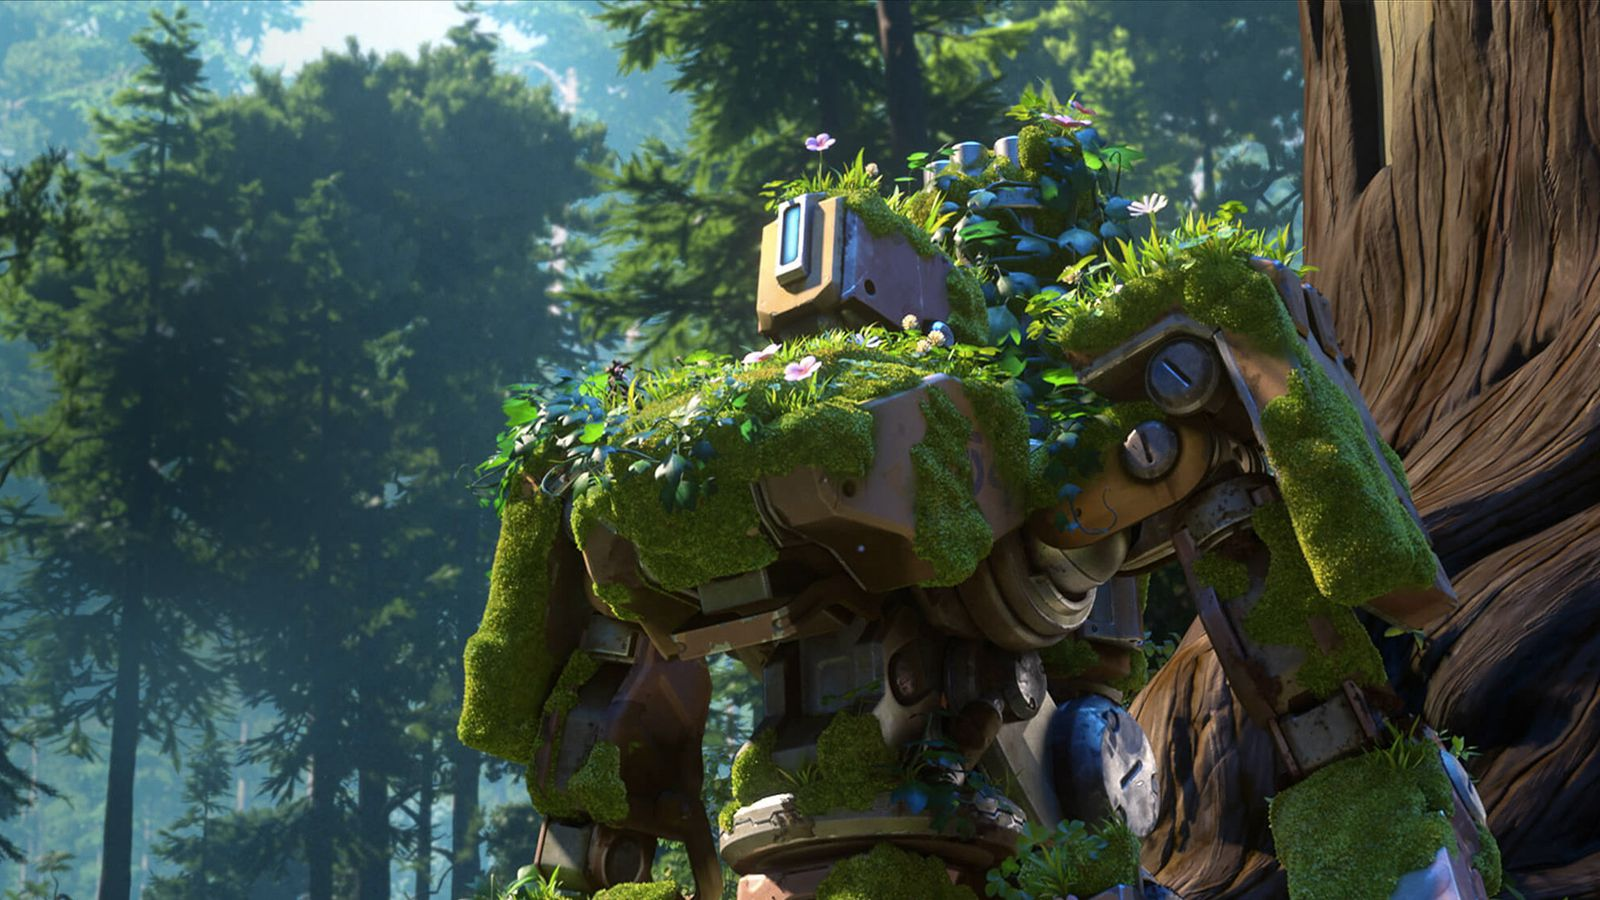 Watch Overwatchs New Animated Short The Last Bastion